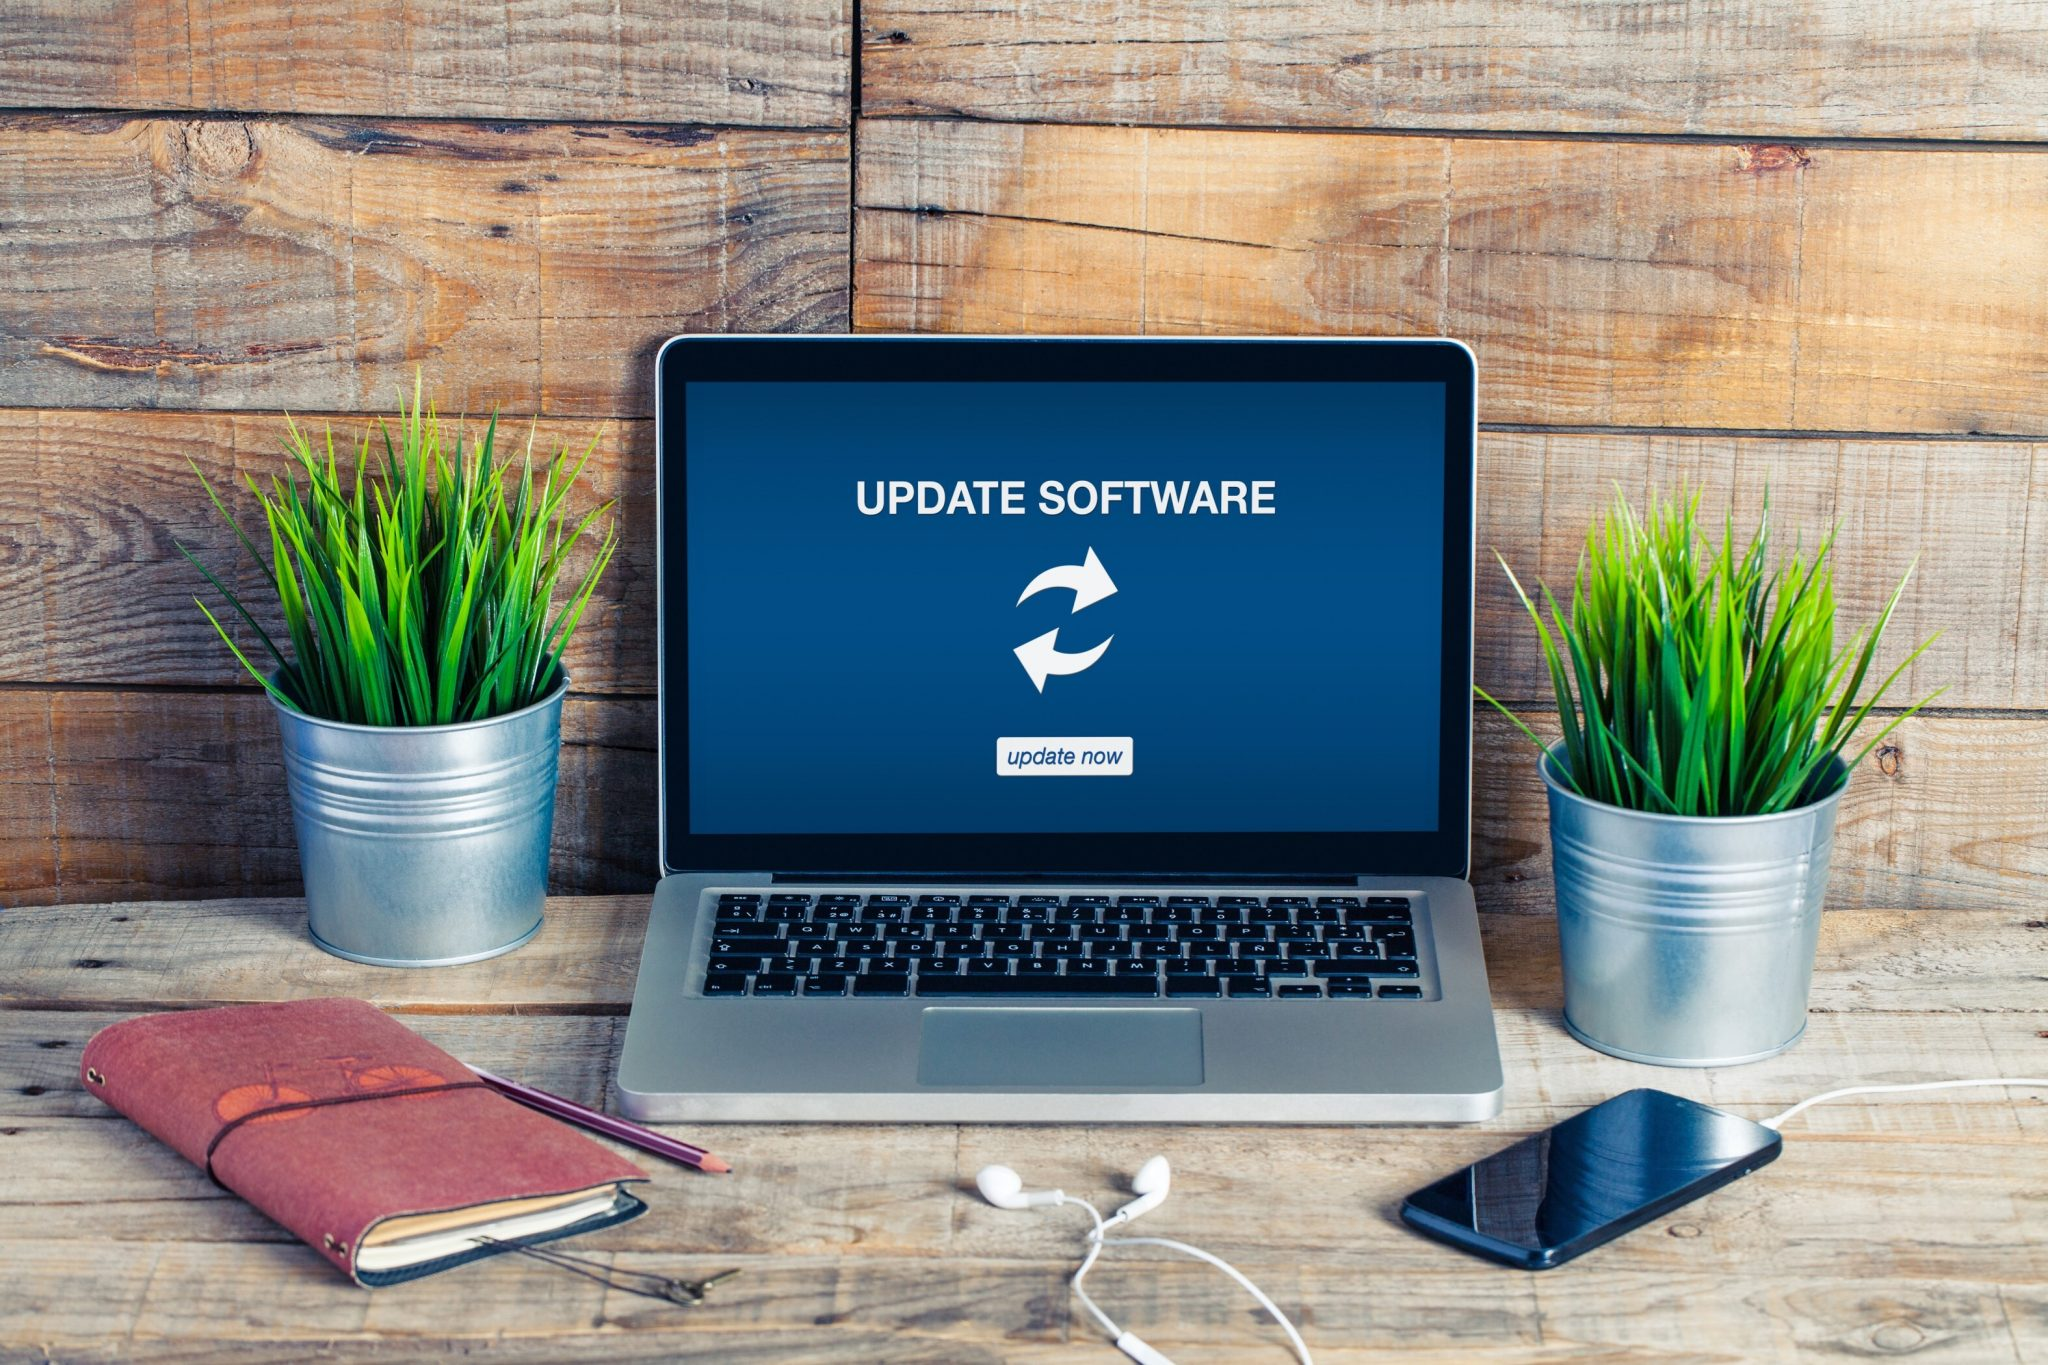 Software update for cybersecurity for small businesses.